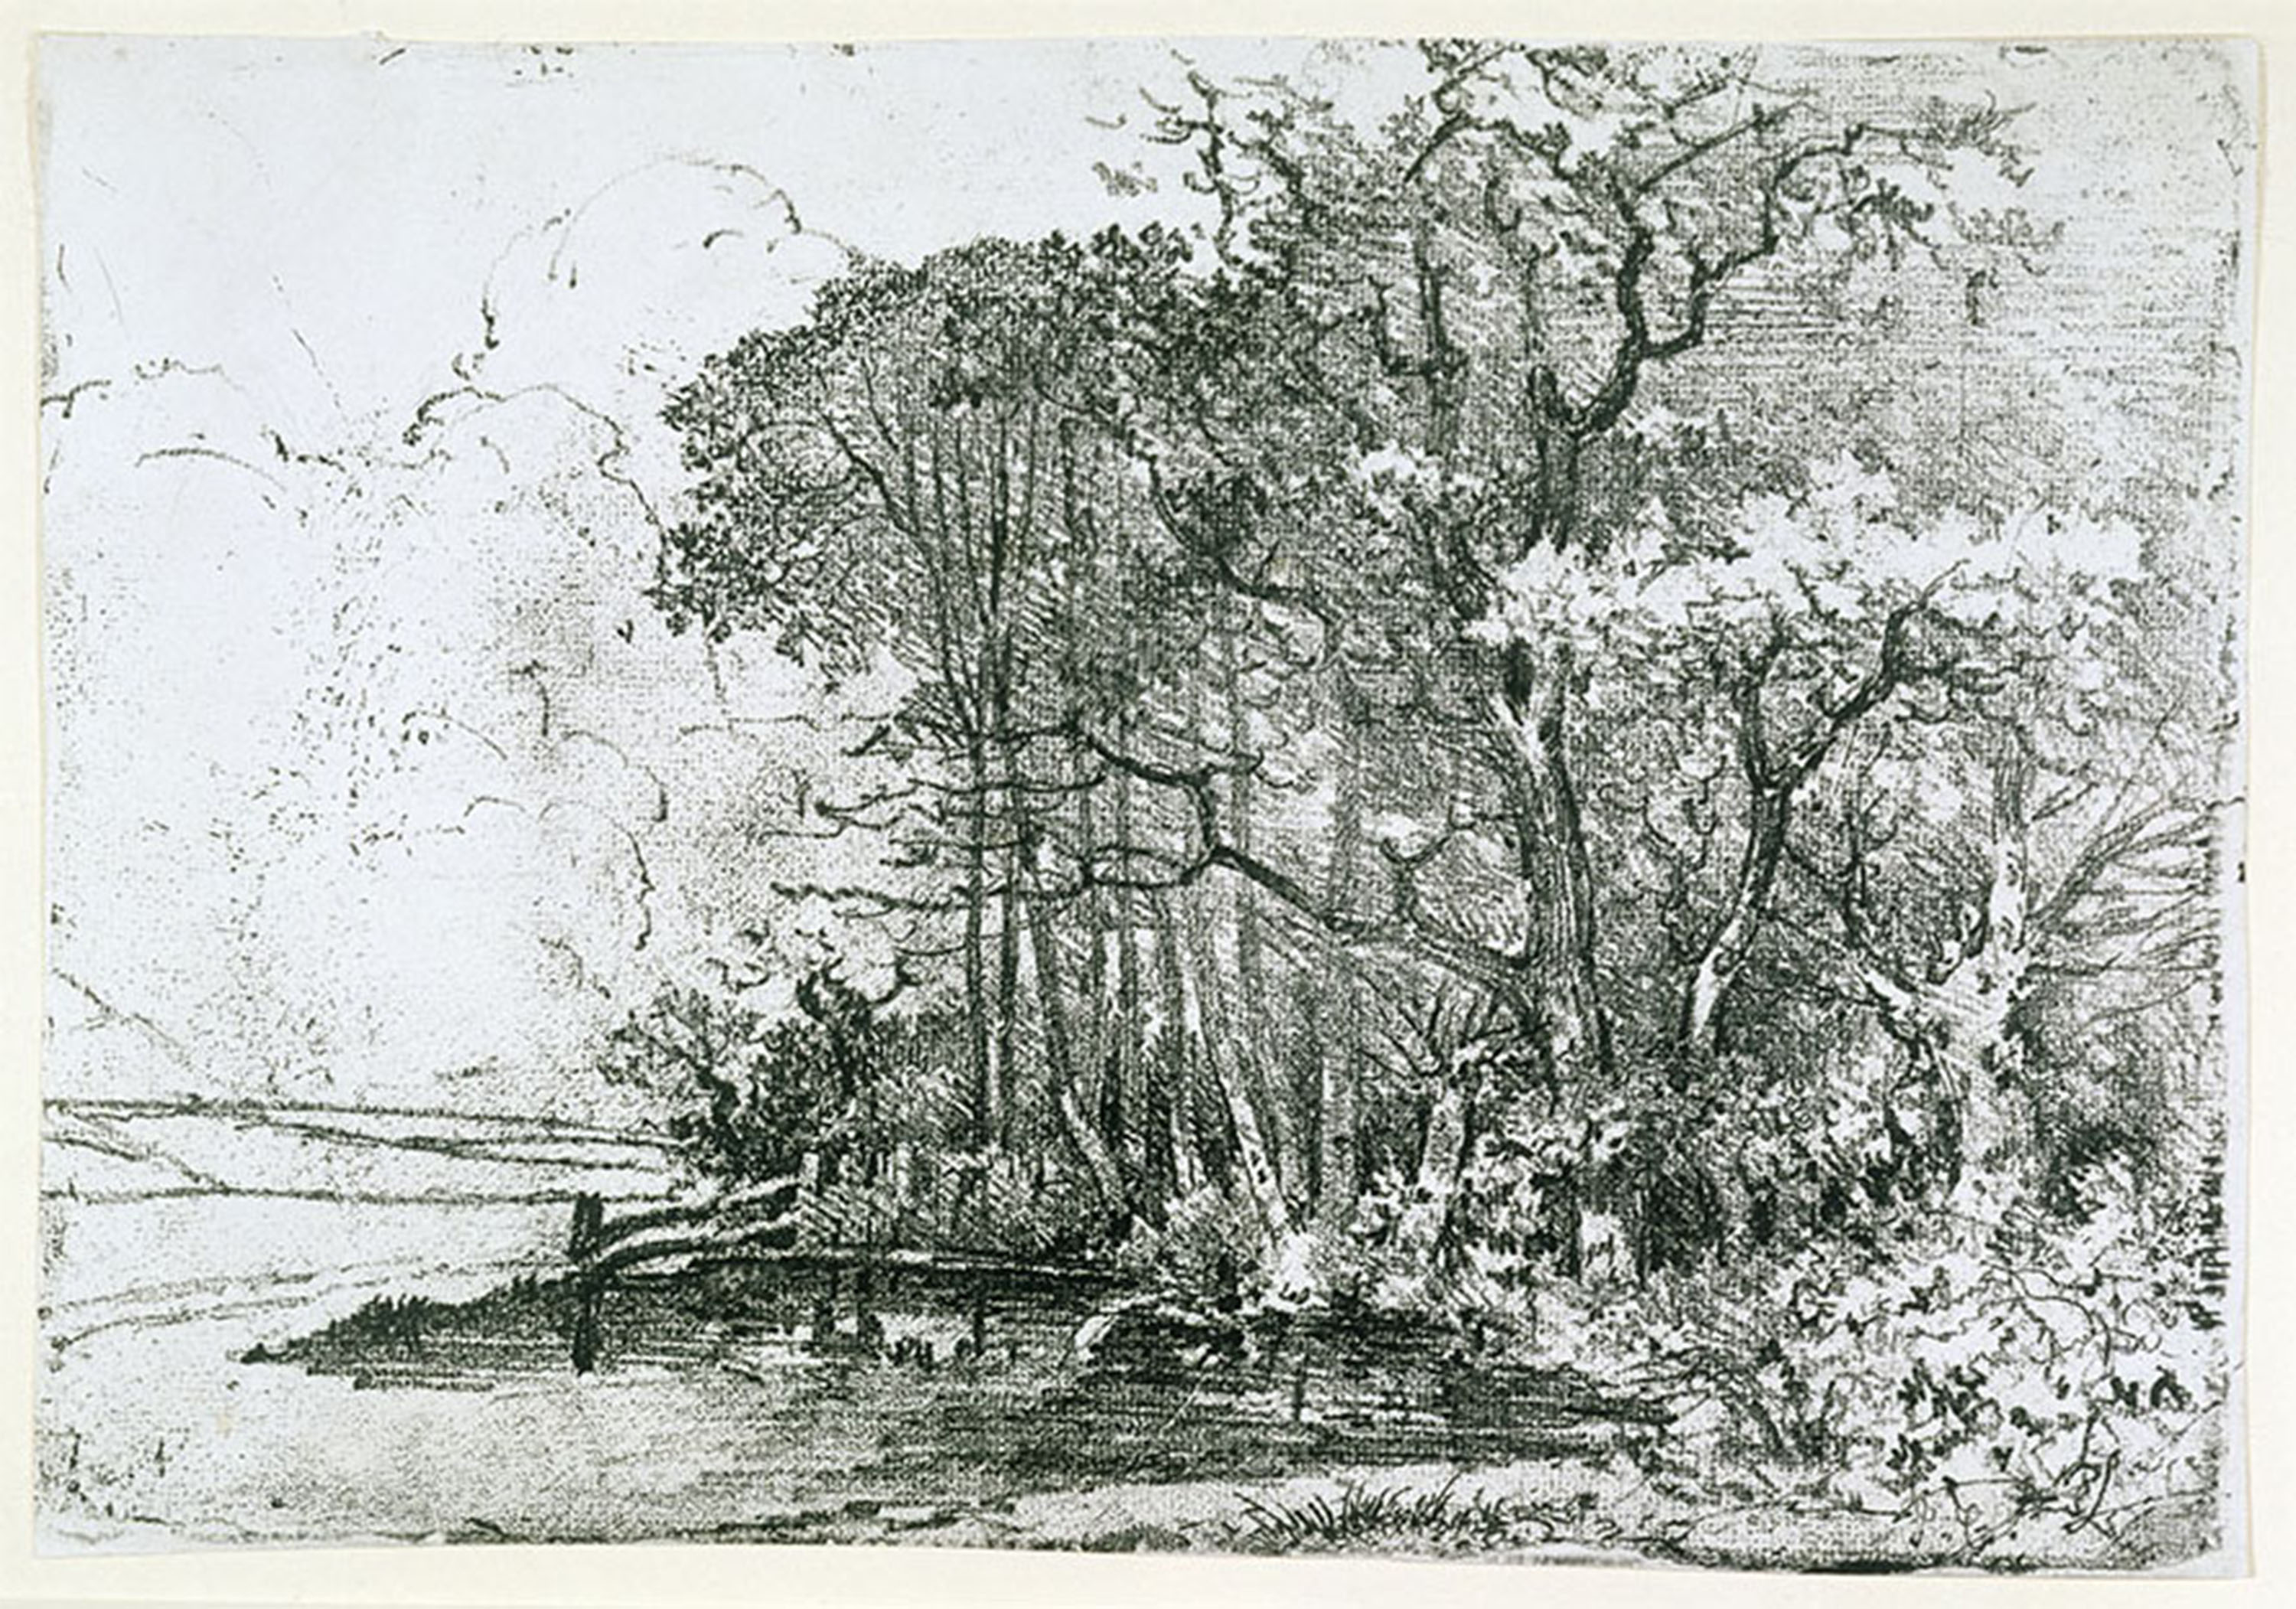 Black and white etching of a wooded scene on right foreground with a cloudy sky in the background